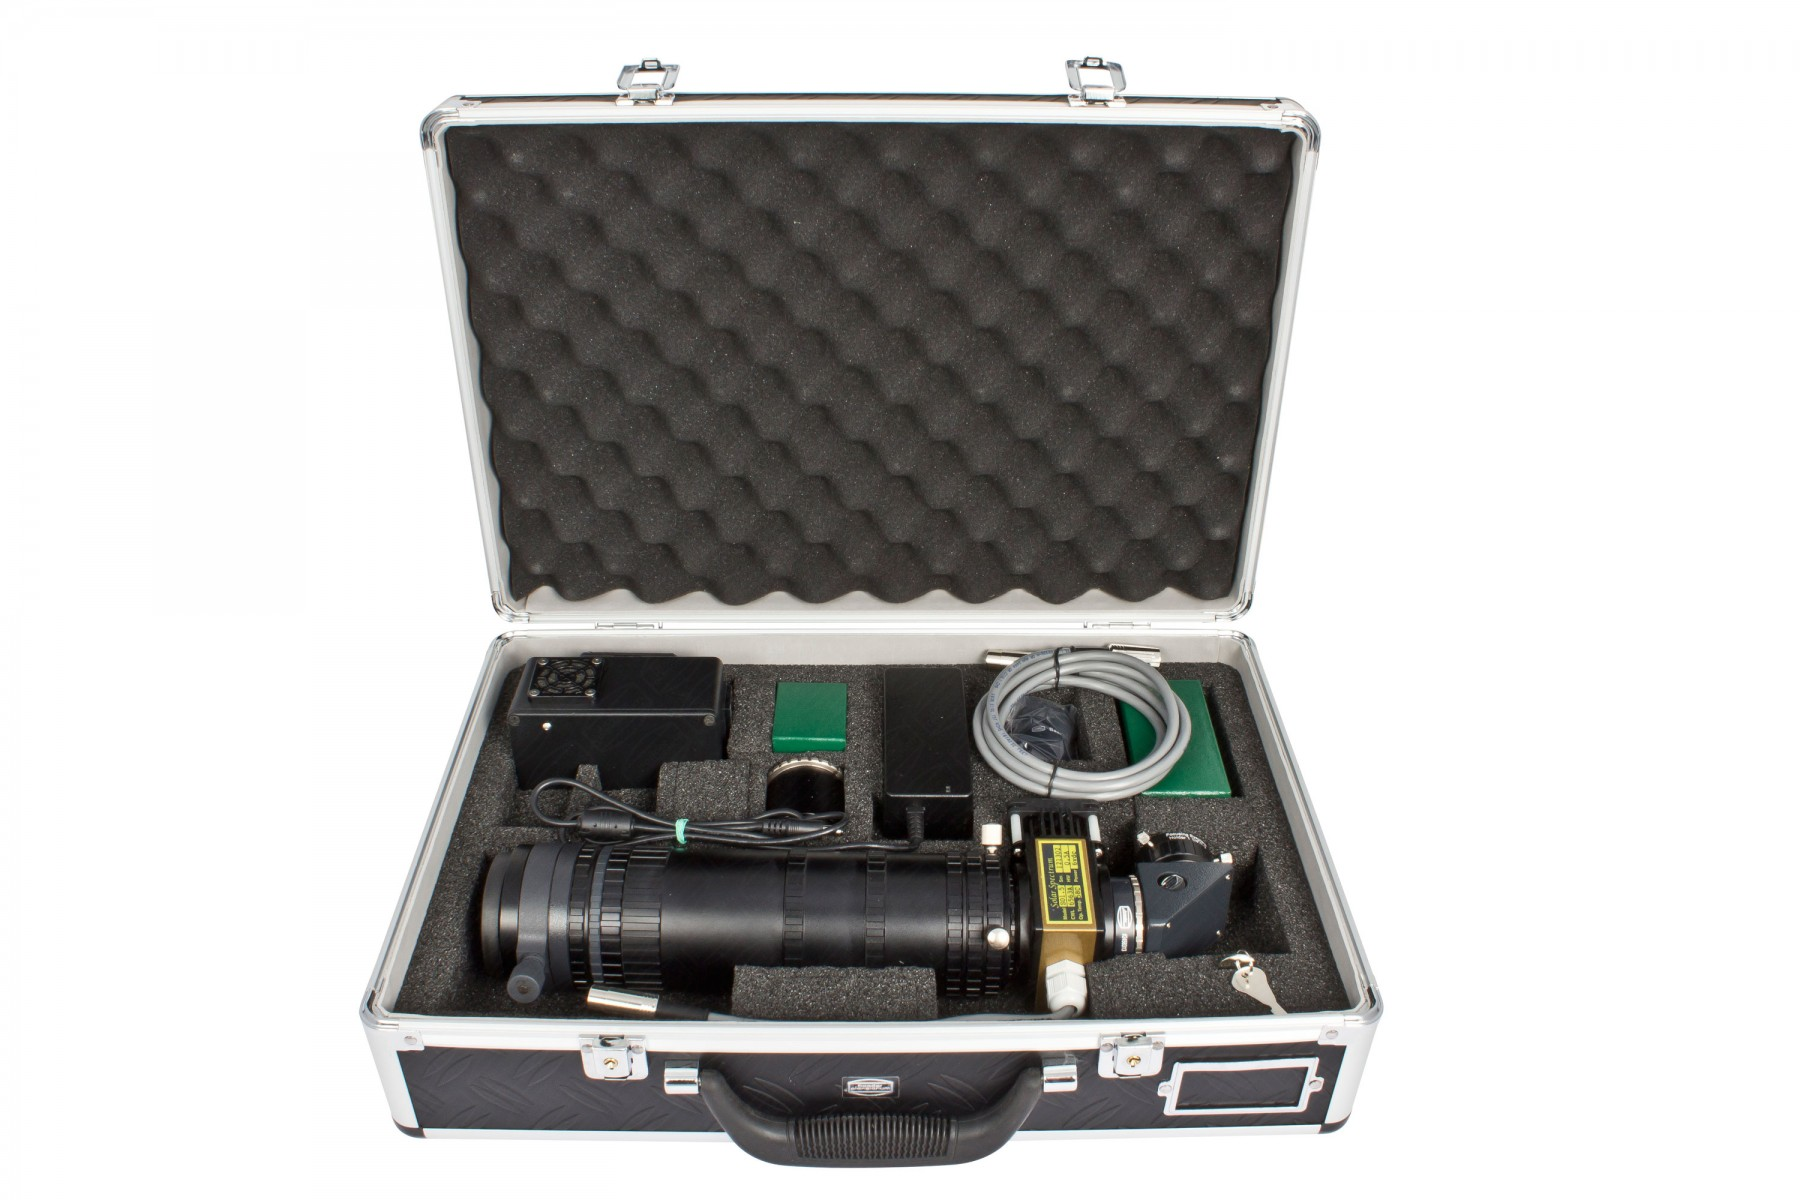 Example of items for a SolarSpectrum Filter (shown #2459219: SolarSpectrum Solar Observer 1.5 - 0.50 Å). Case and accessories are optional available